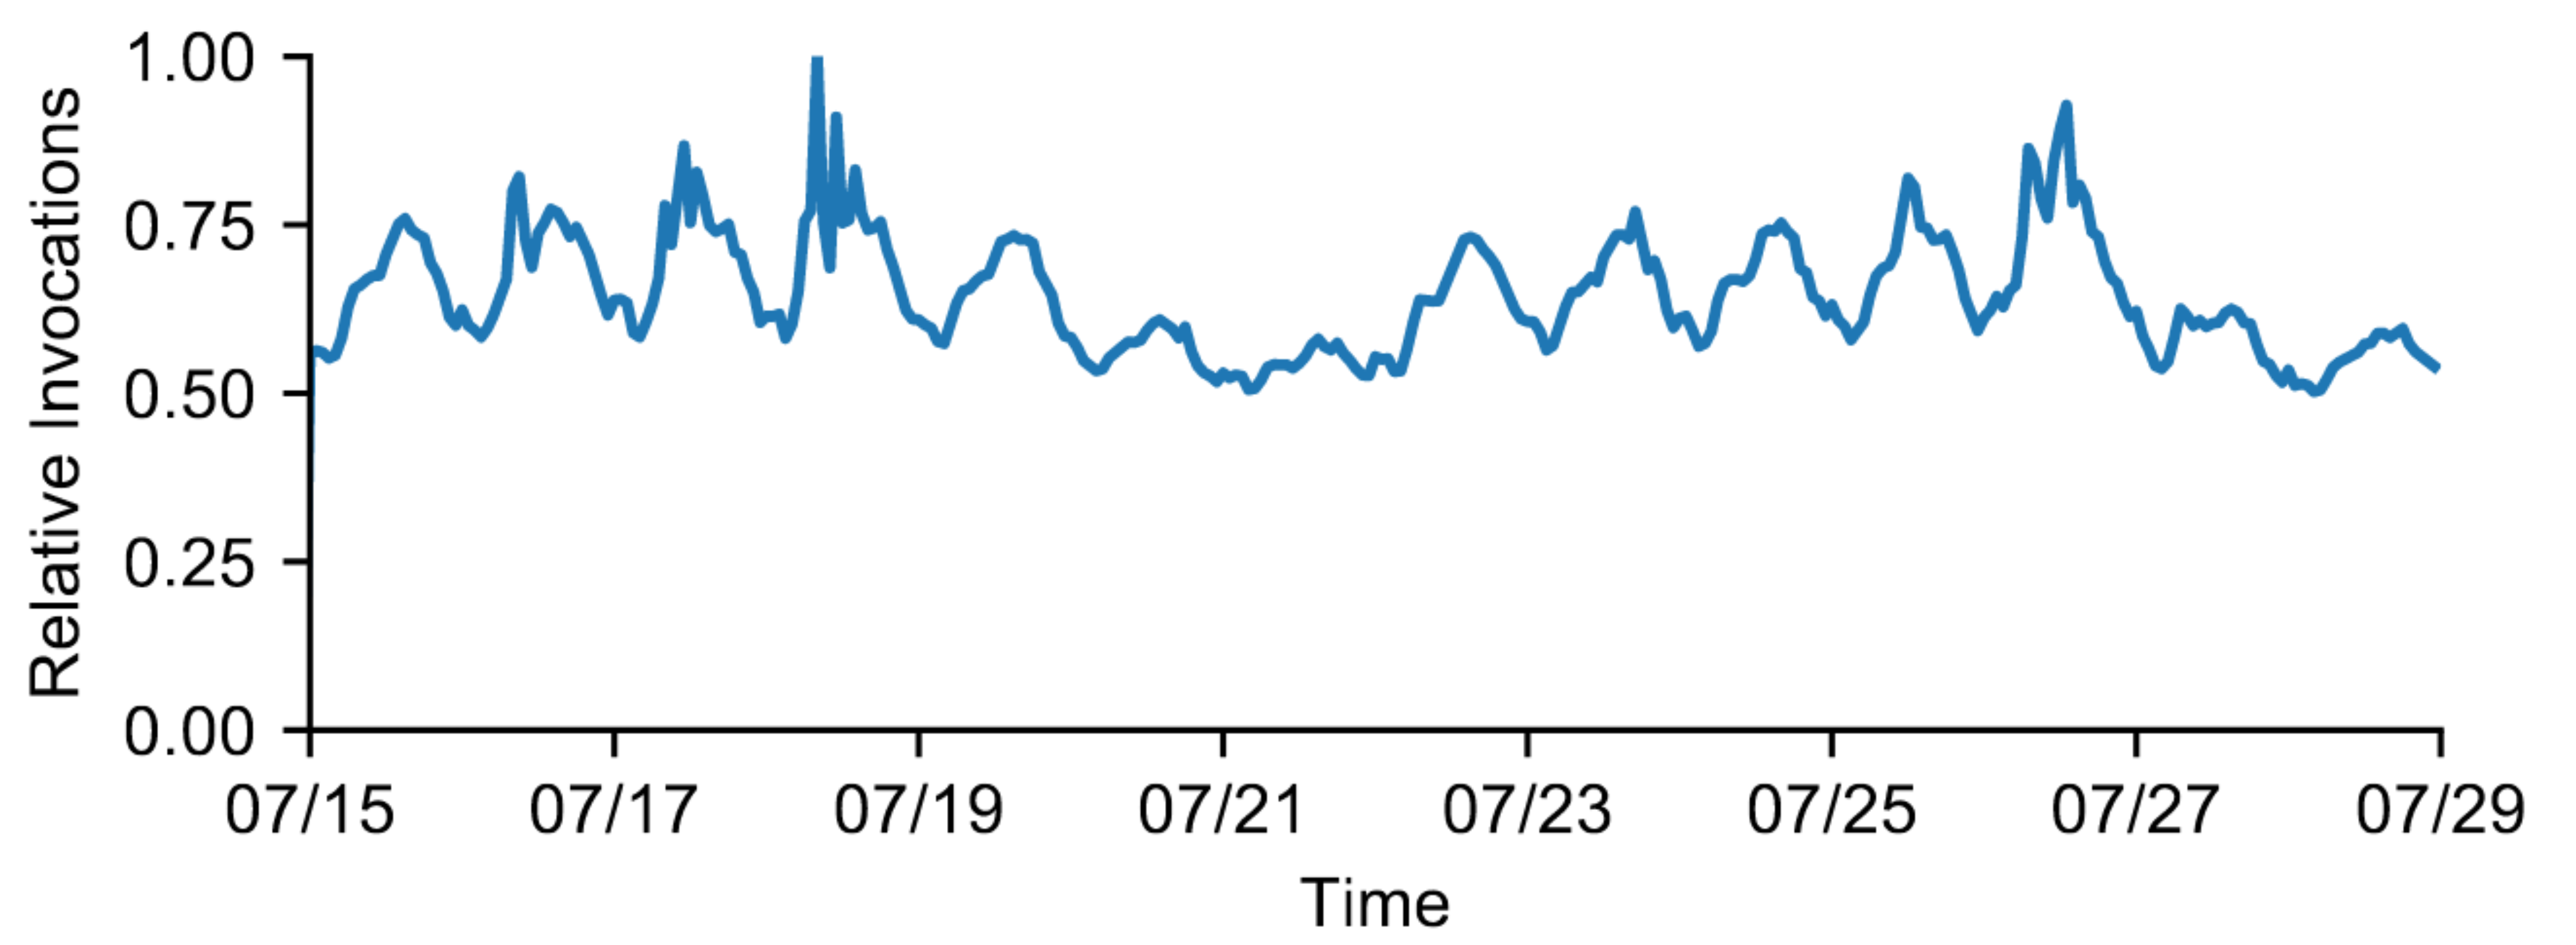 Total invocations per hour for all Azure Functions, relative to the peak